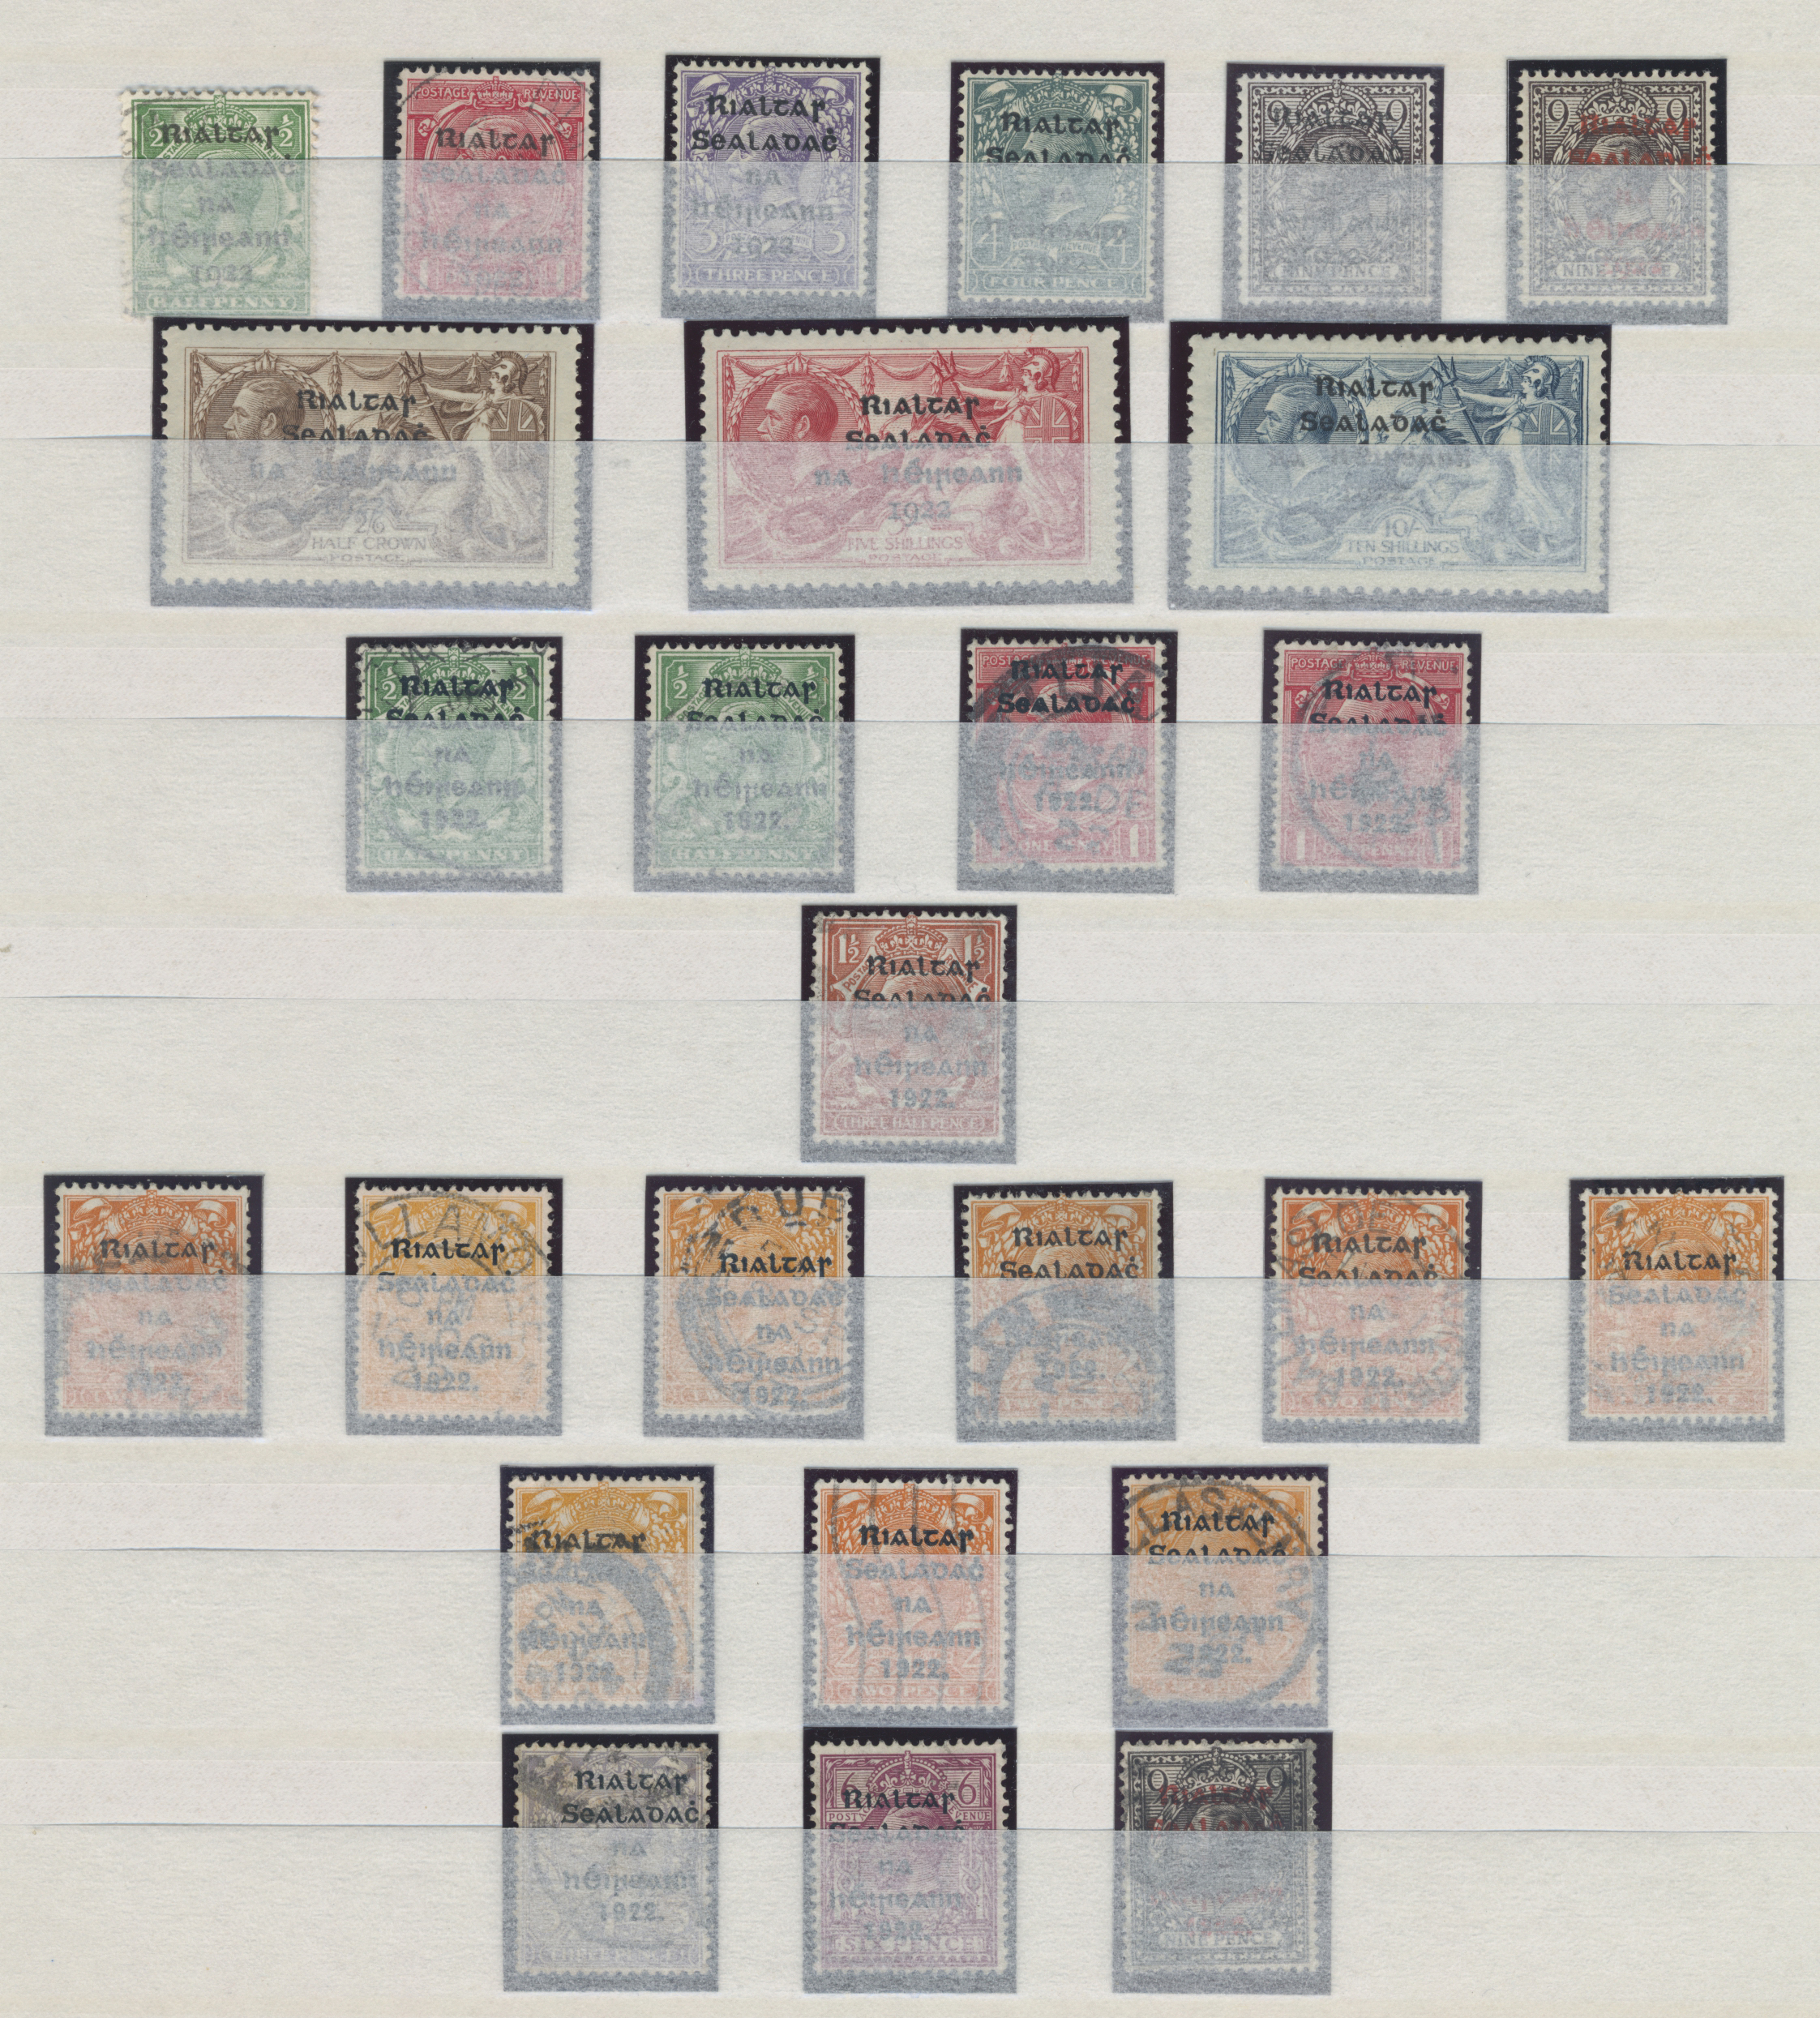 Lot 17154 - irland  -  Auktionshaus Christoph Gärtner GmbH & Co. KG Sale #48 collections Overseas  Airmail / Ship mail & Thematics